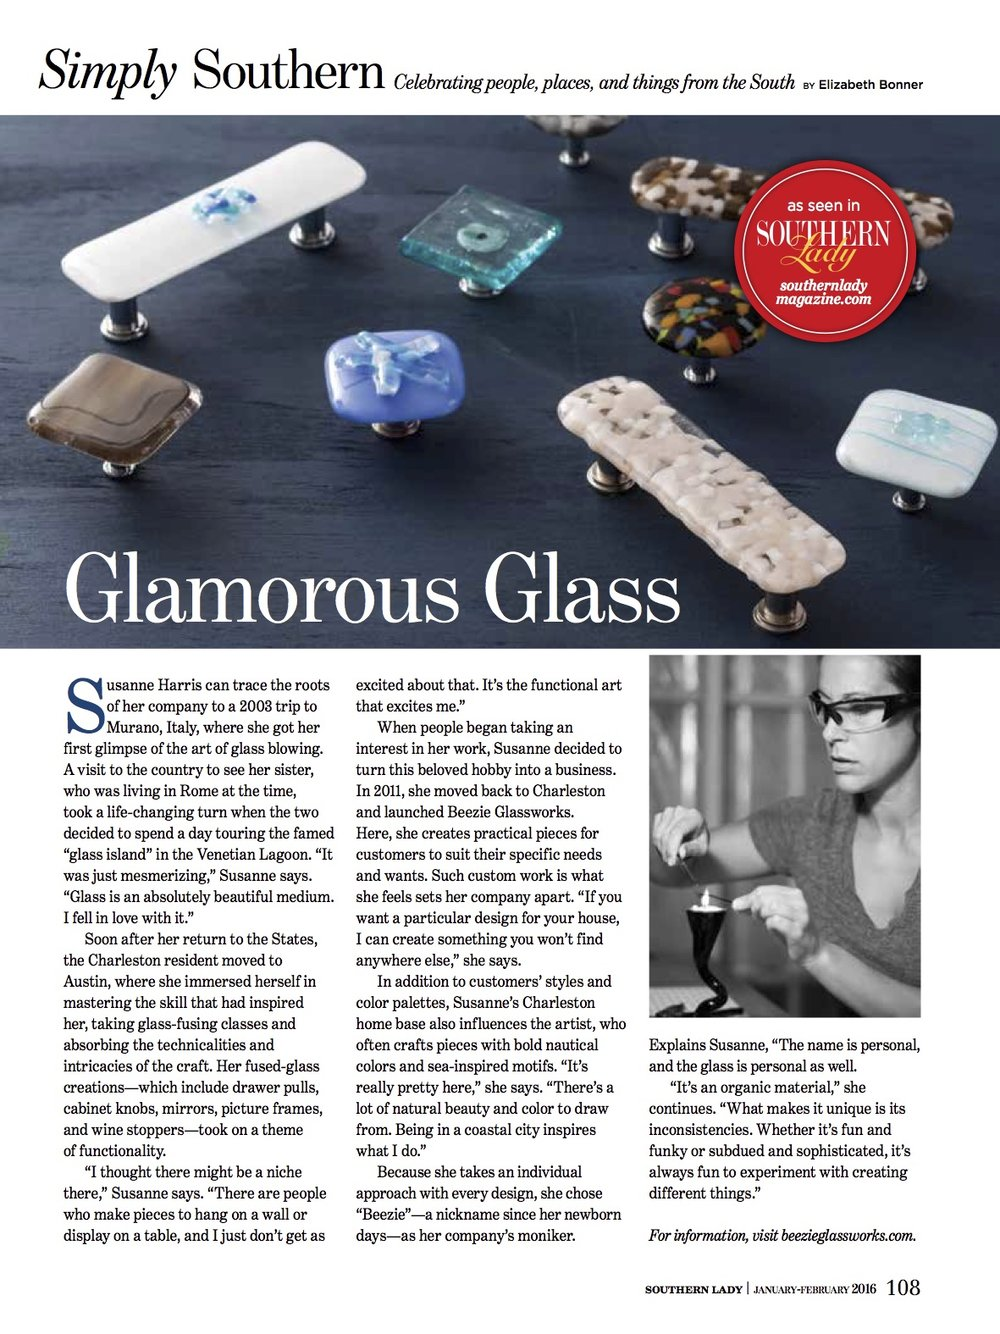 Glamorous Glass article - Southern Lady Magazine Jan 2016 issue